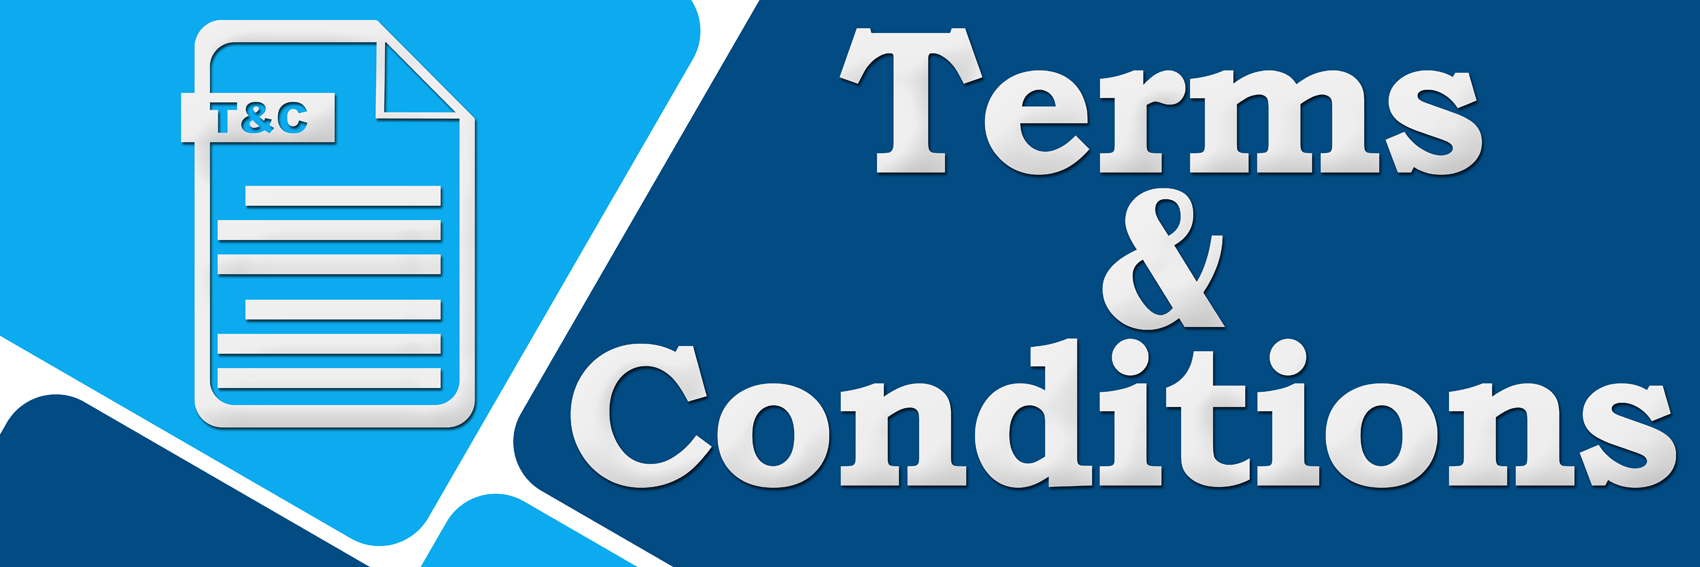 Terms and Conditions image